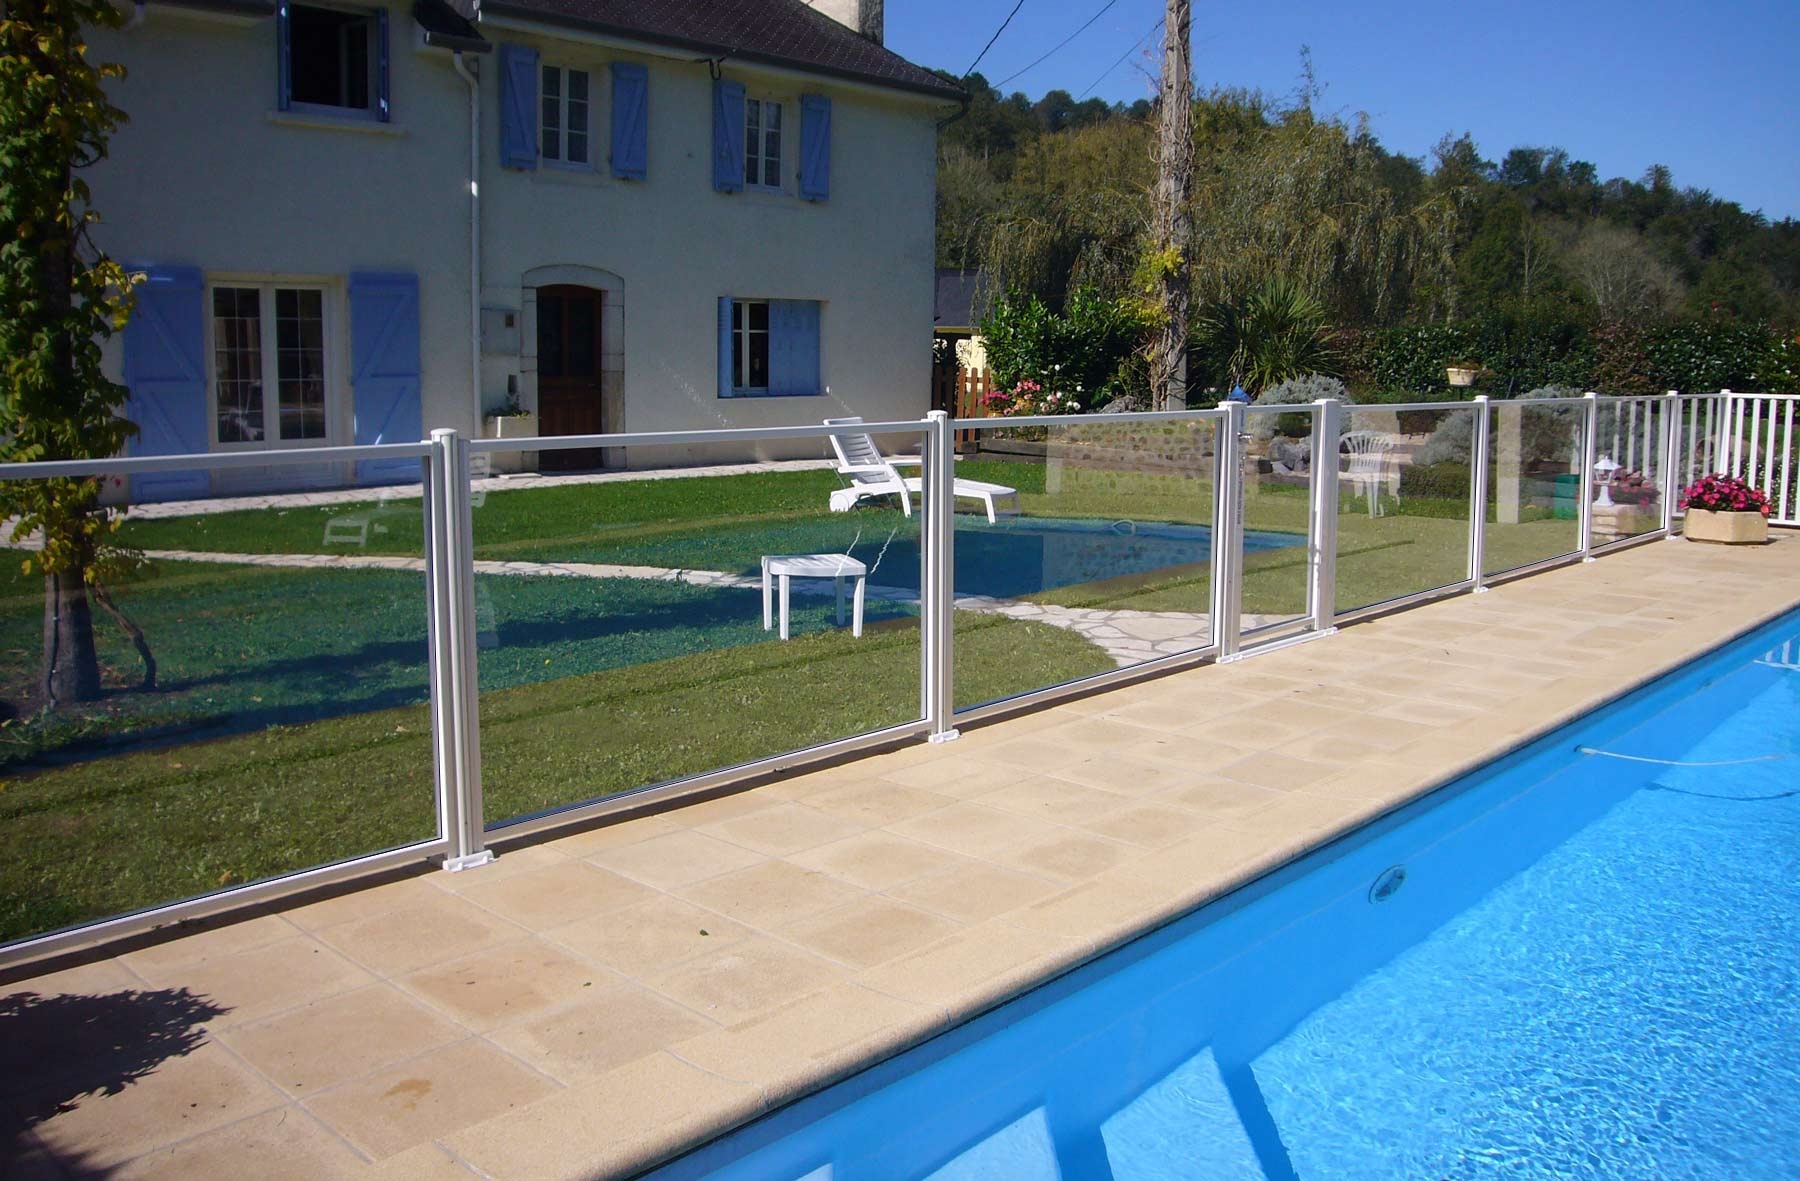 Les barri res en verre de protection d 39 atlantic barriere for Barriere piscine verre inox